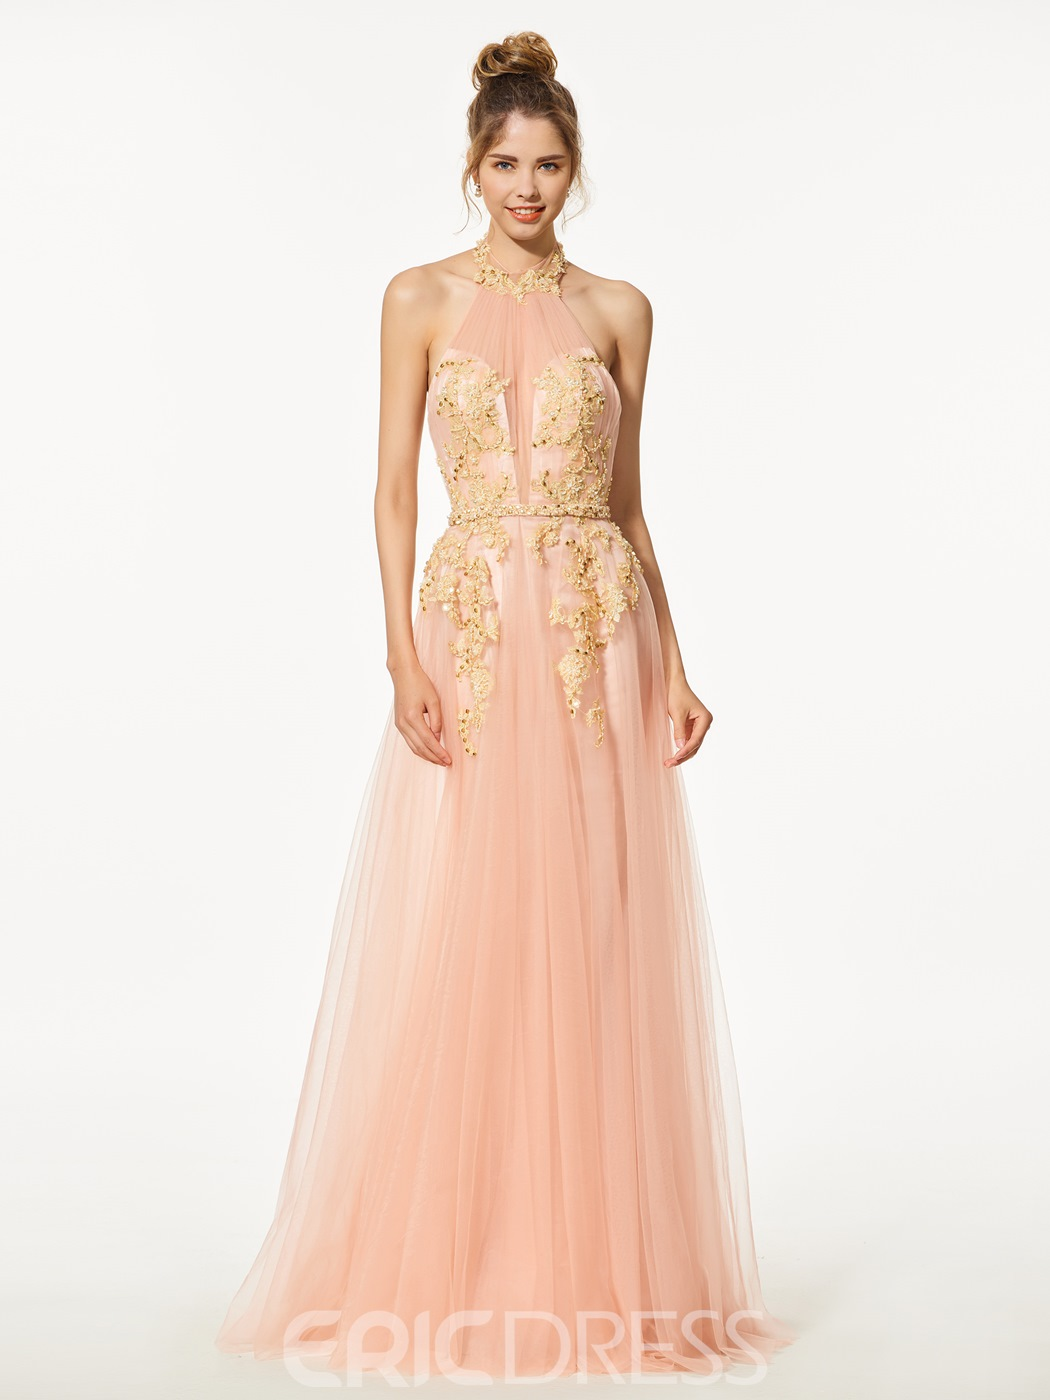 Ericdress A-Line Halter Appliques Beading Backless Prom Dress